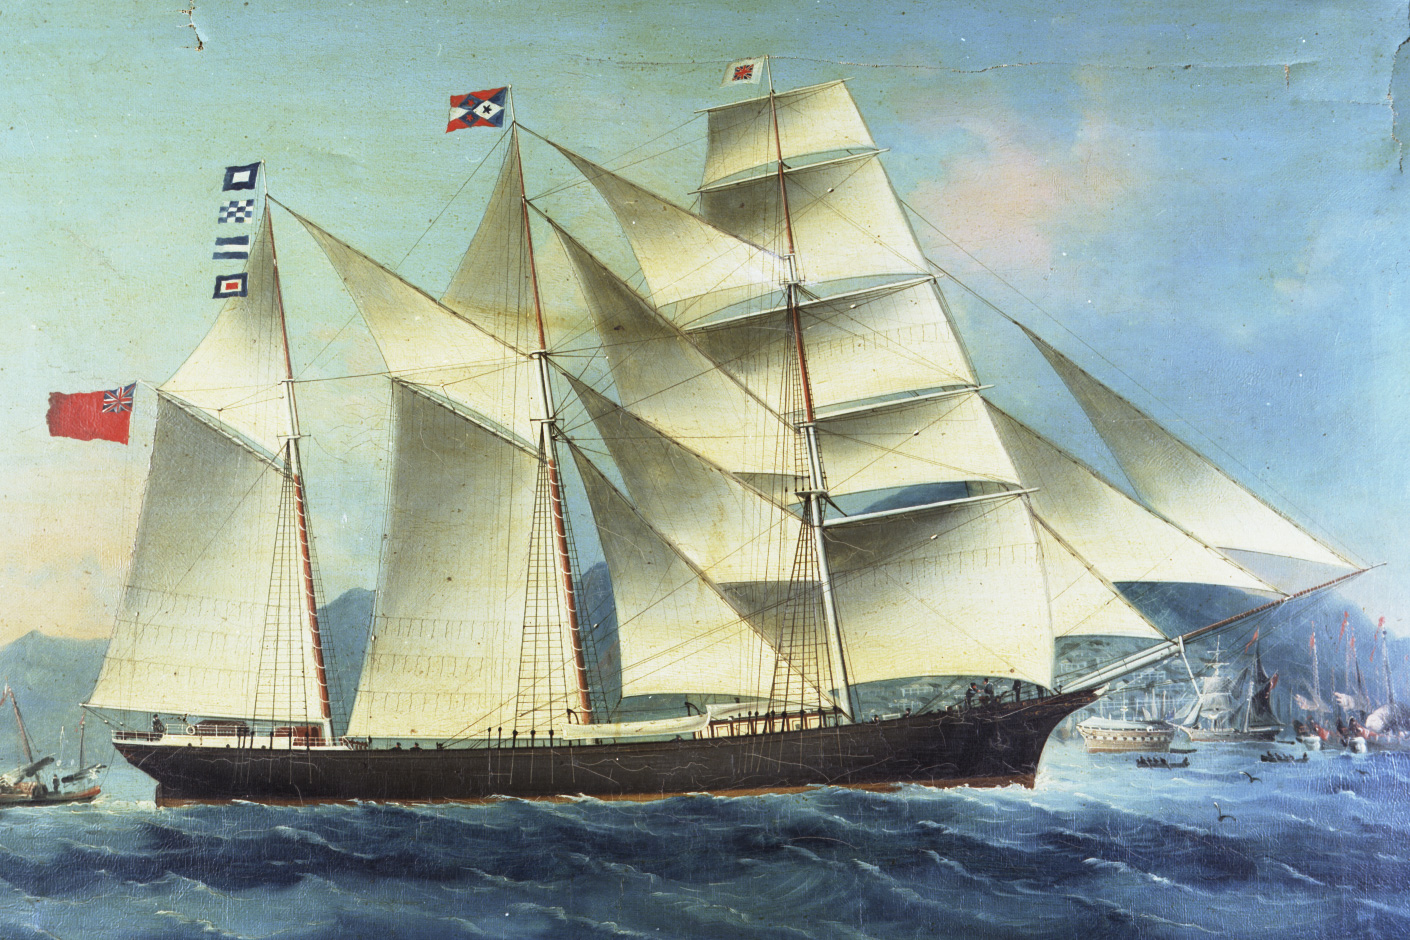 Oil painting of the schooner 'Rosebud' at Hong Kong.